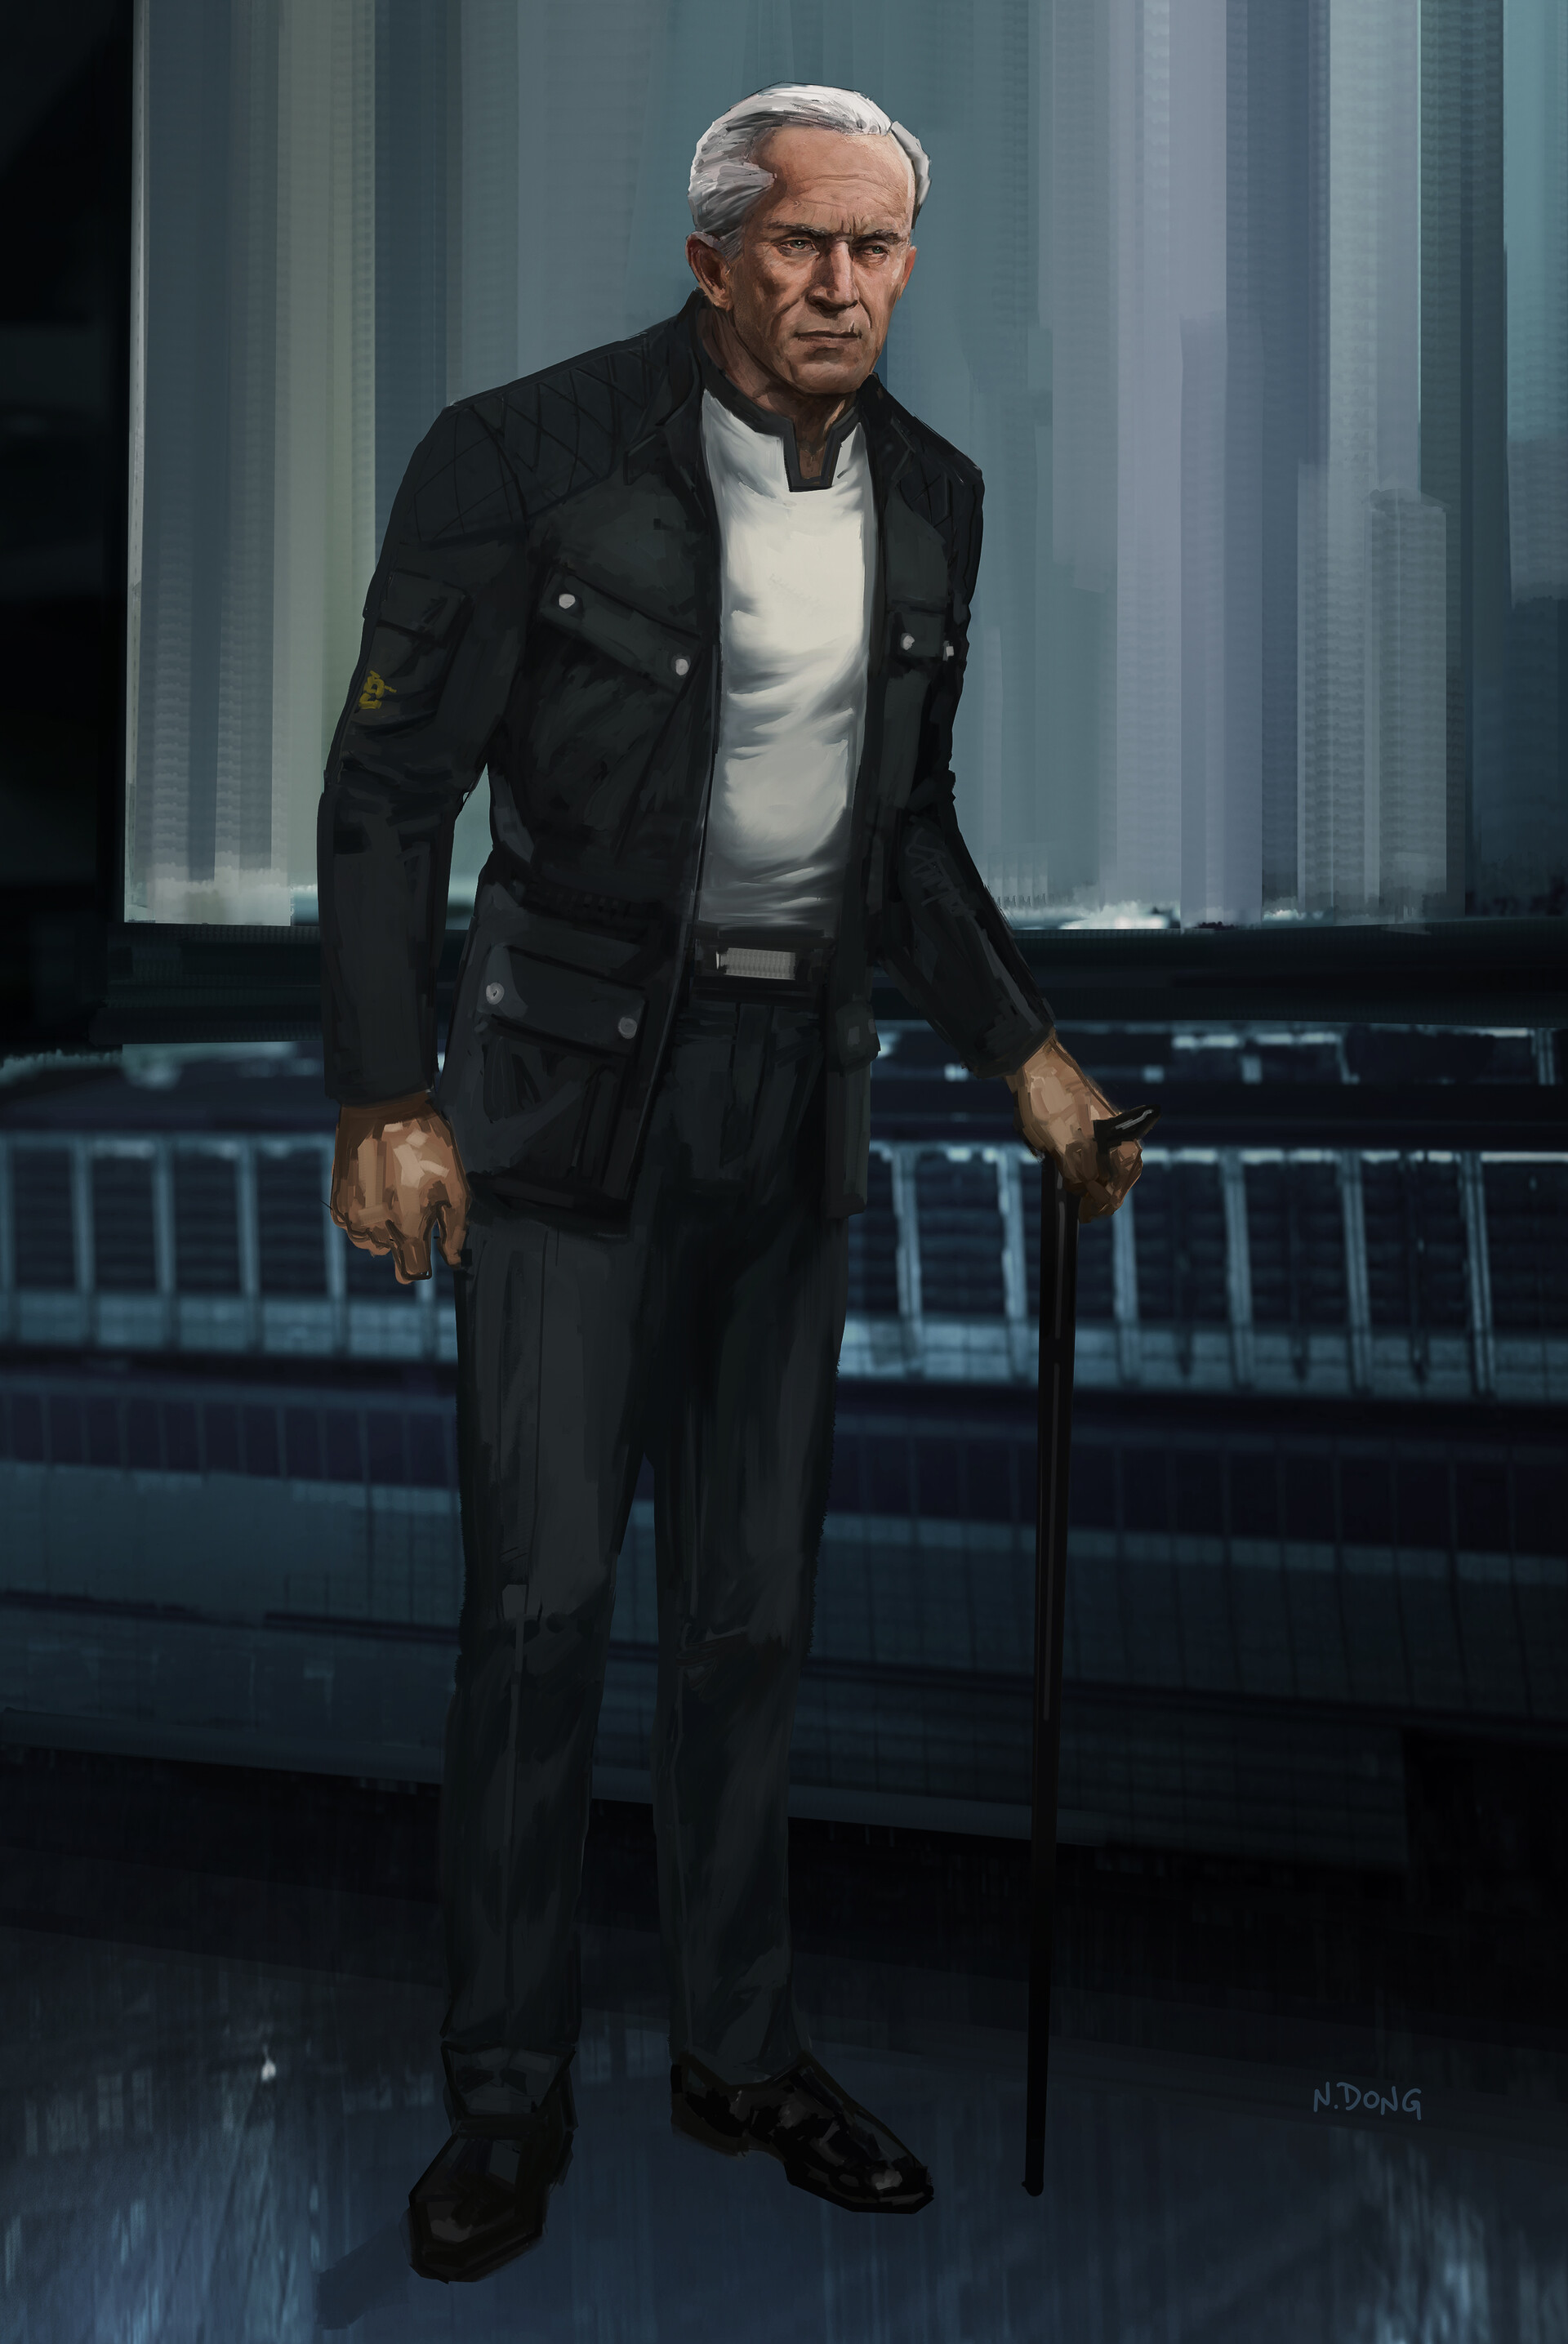 An older design variation of Bruce Wayne than the previous dressed in casual clothes.